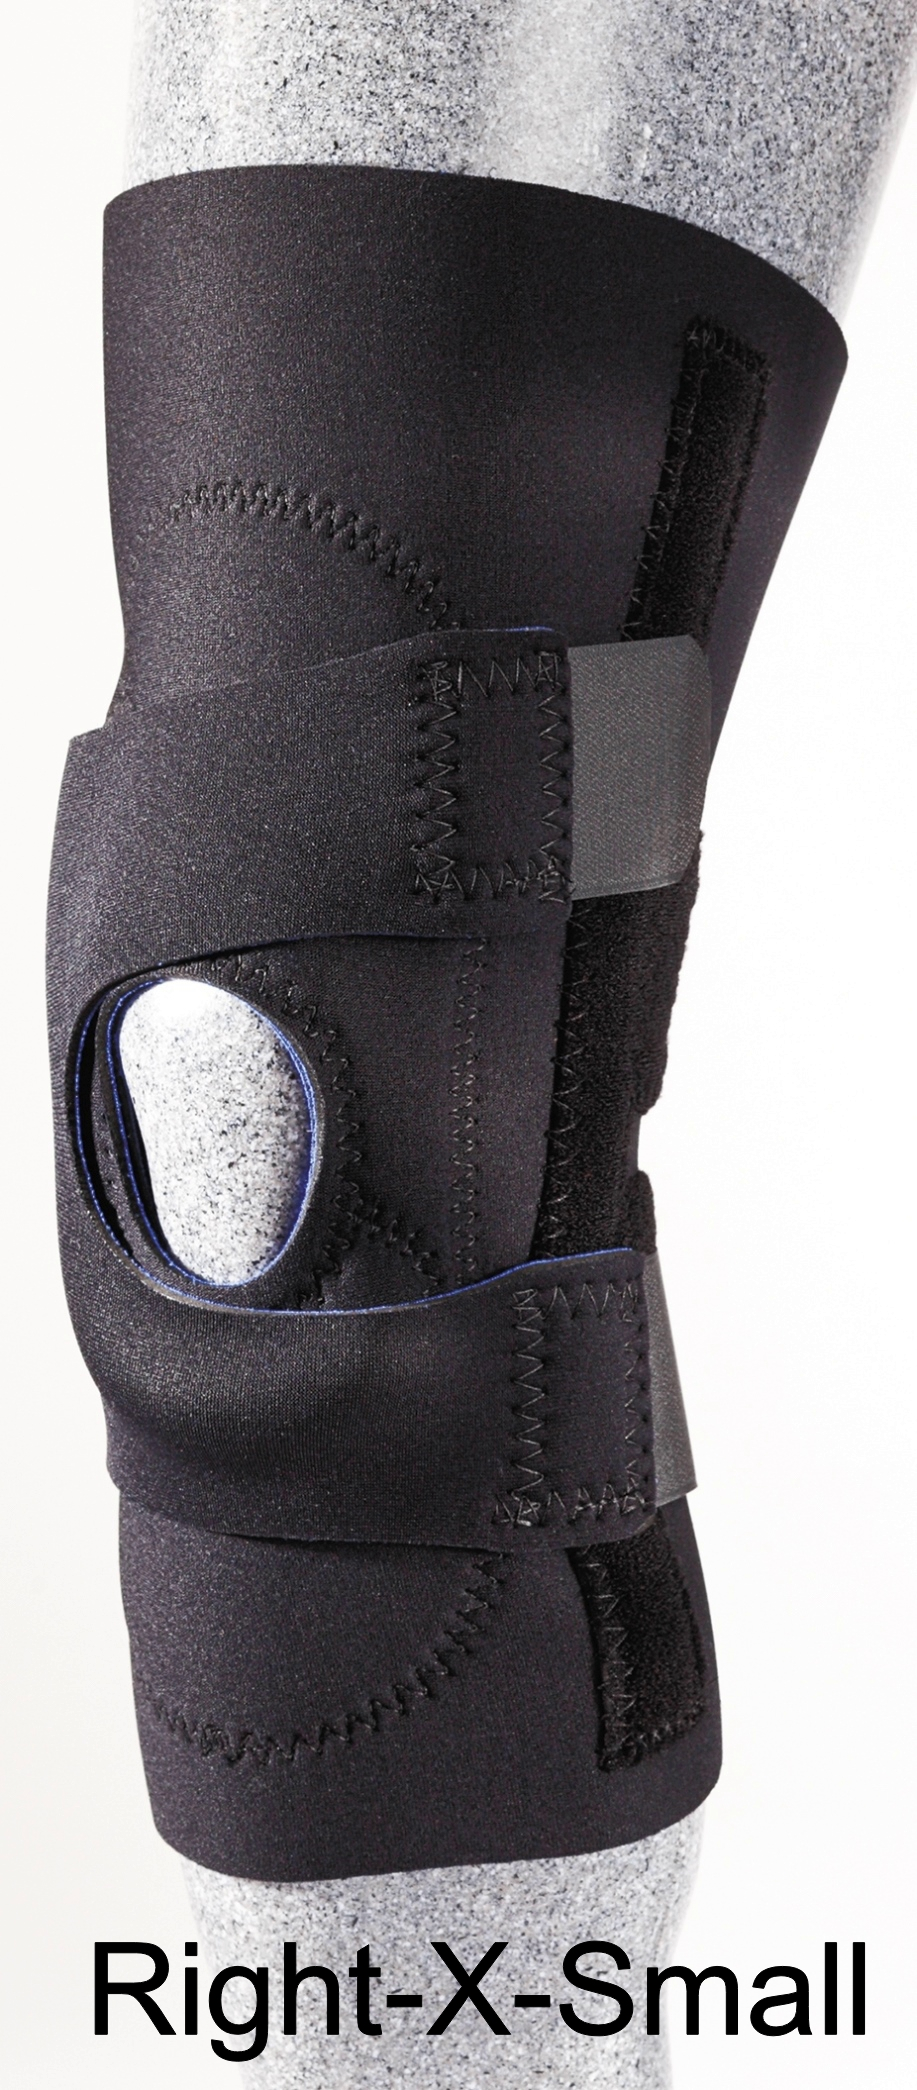 Patellar Stabilizer (J-Brace) with Pull Straps - Right - X-Small - (12